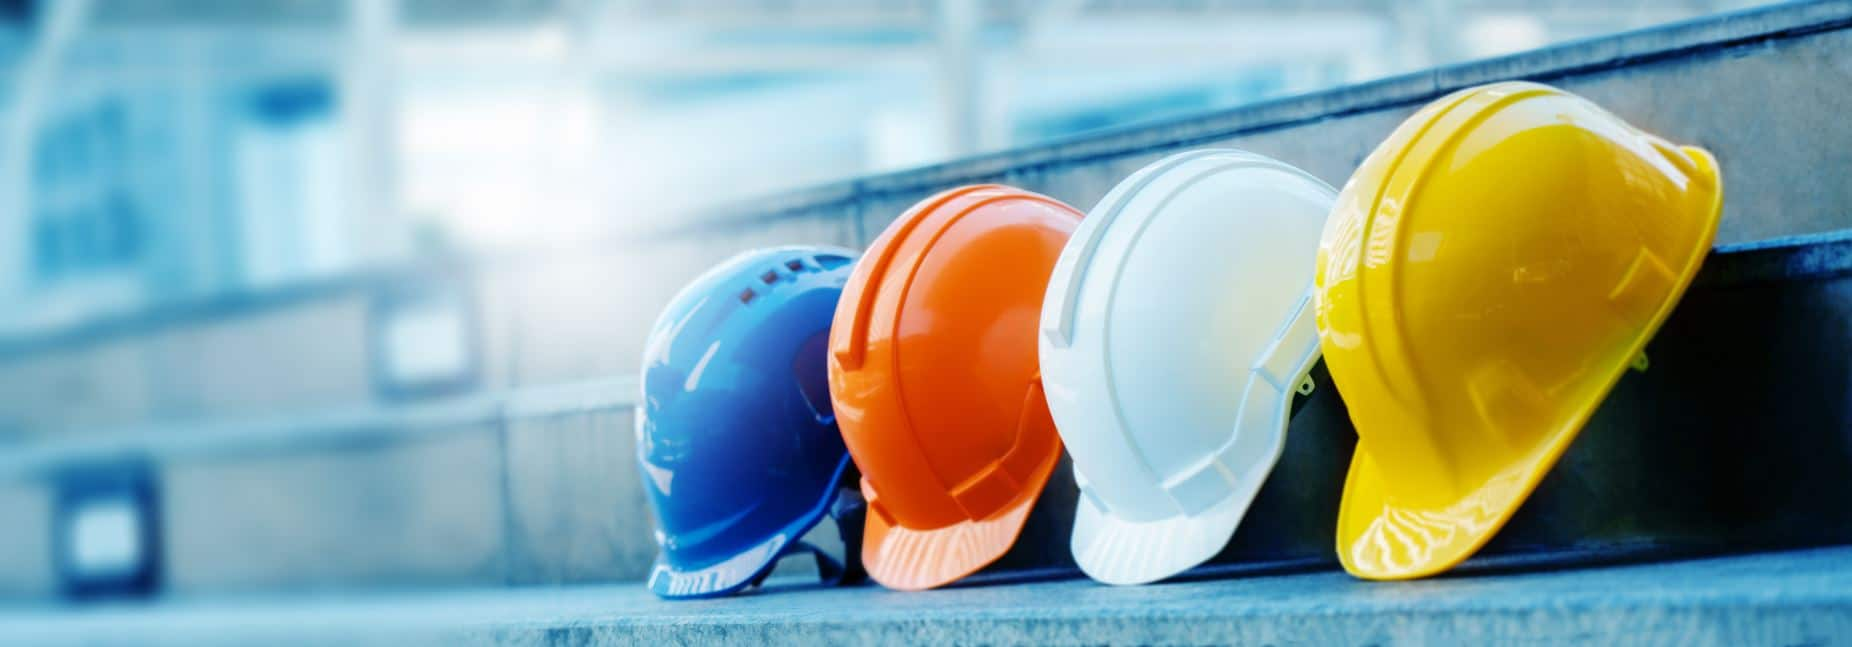 Health and Safety Systems and Compliance Management